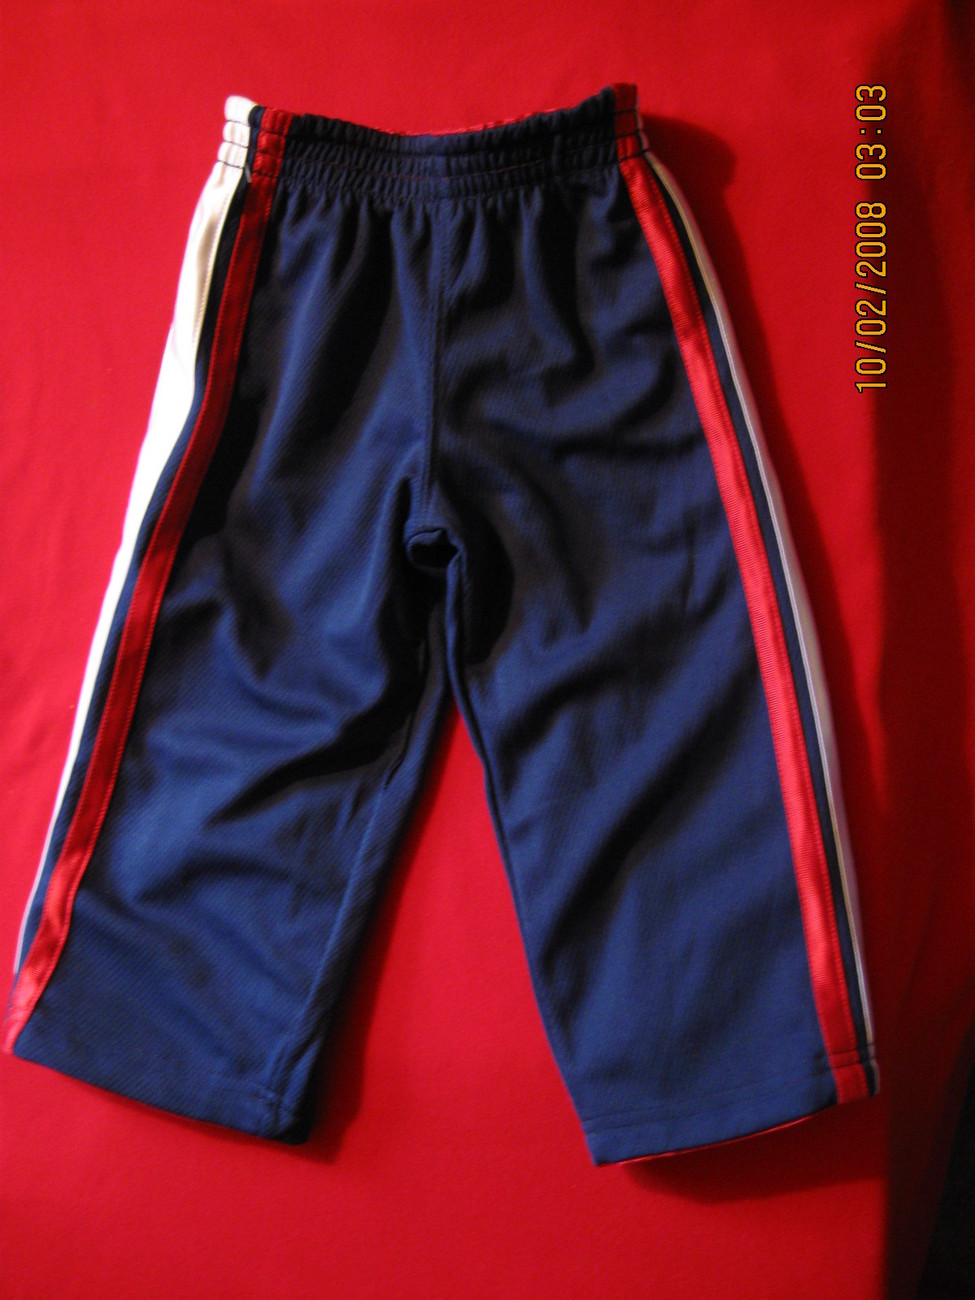 Jacket And Pants Reversible Sports Outfit-Boys-Red-12 Mos.